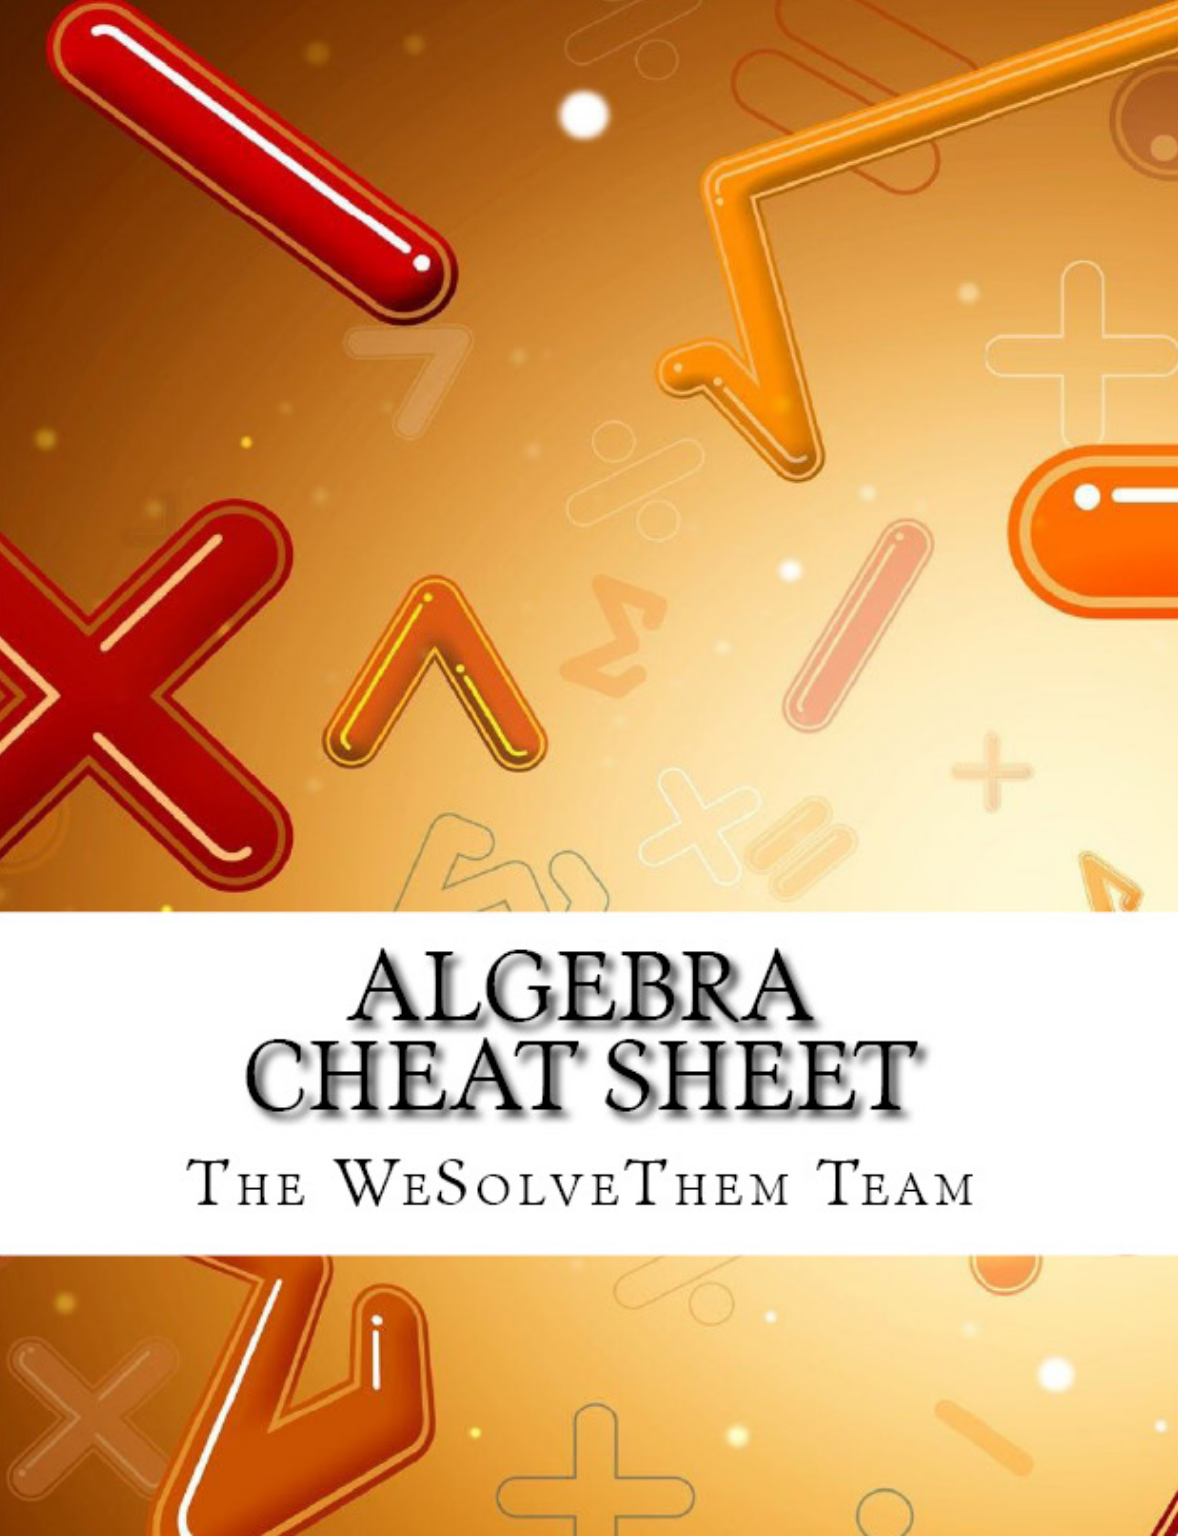 college algebra cheat sheet Beginning algebra: real numbers, algebraic expressions, linear equations & graphs by william r parks english | jan cheat sheets and other books by the wesolvethemcom team are designed for the modern college student we focus on the material that is actually in the courses, give pointers.